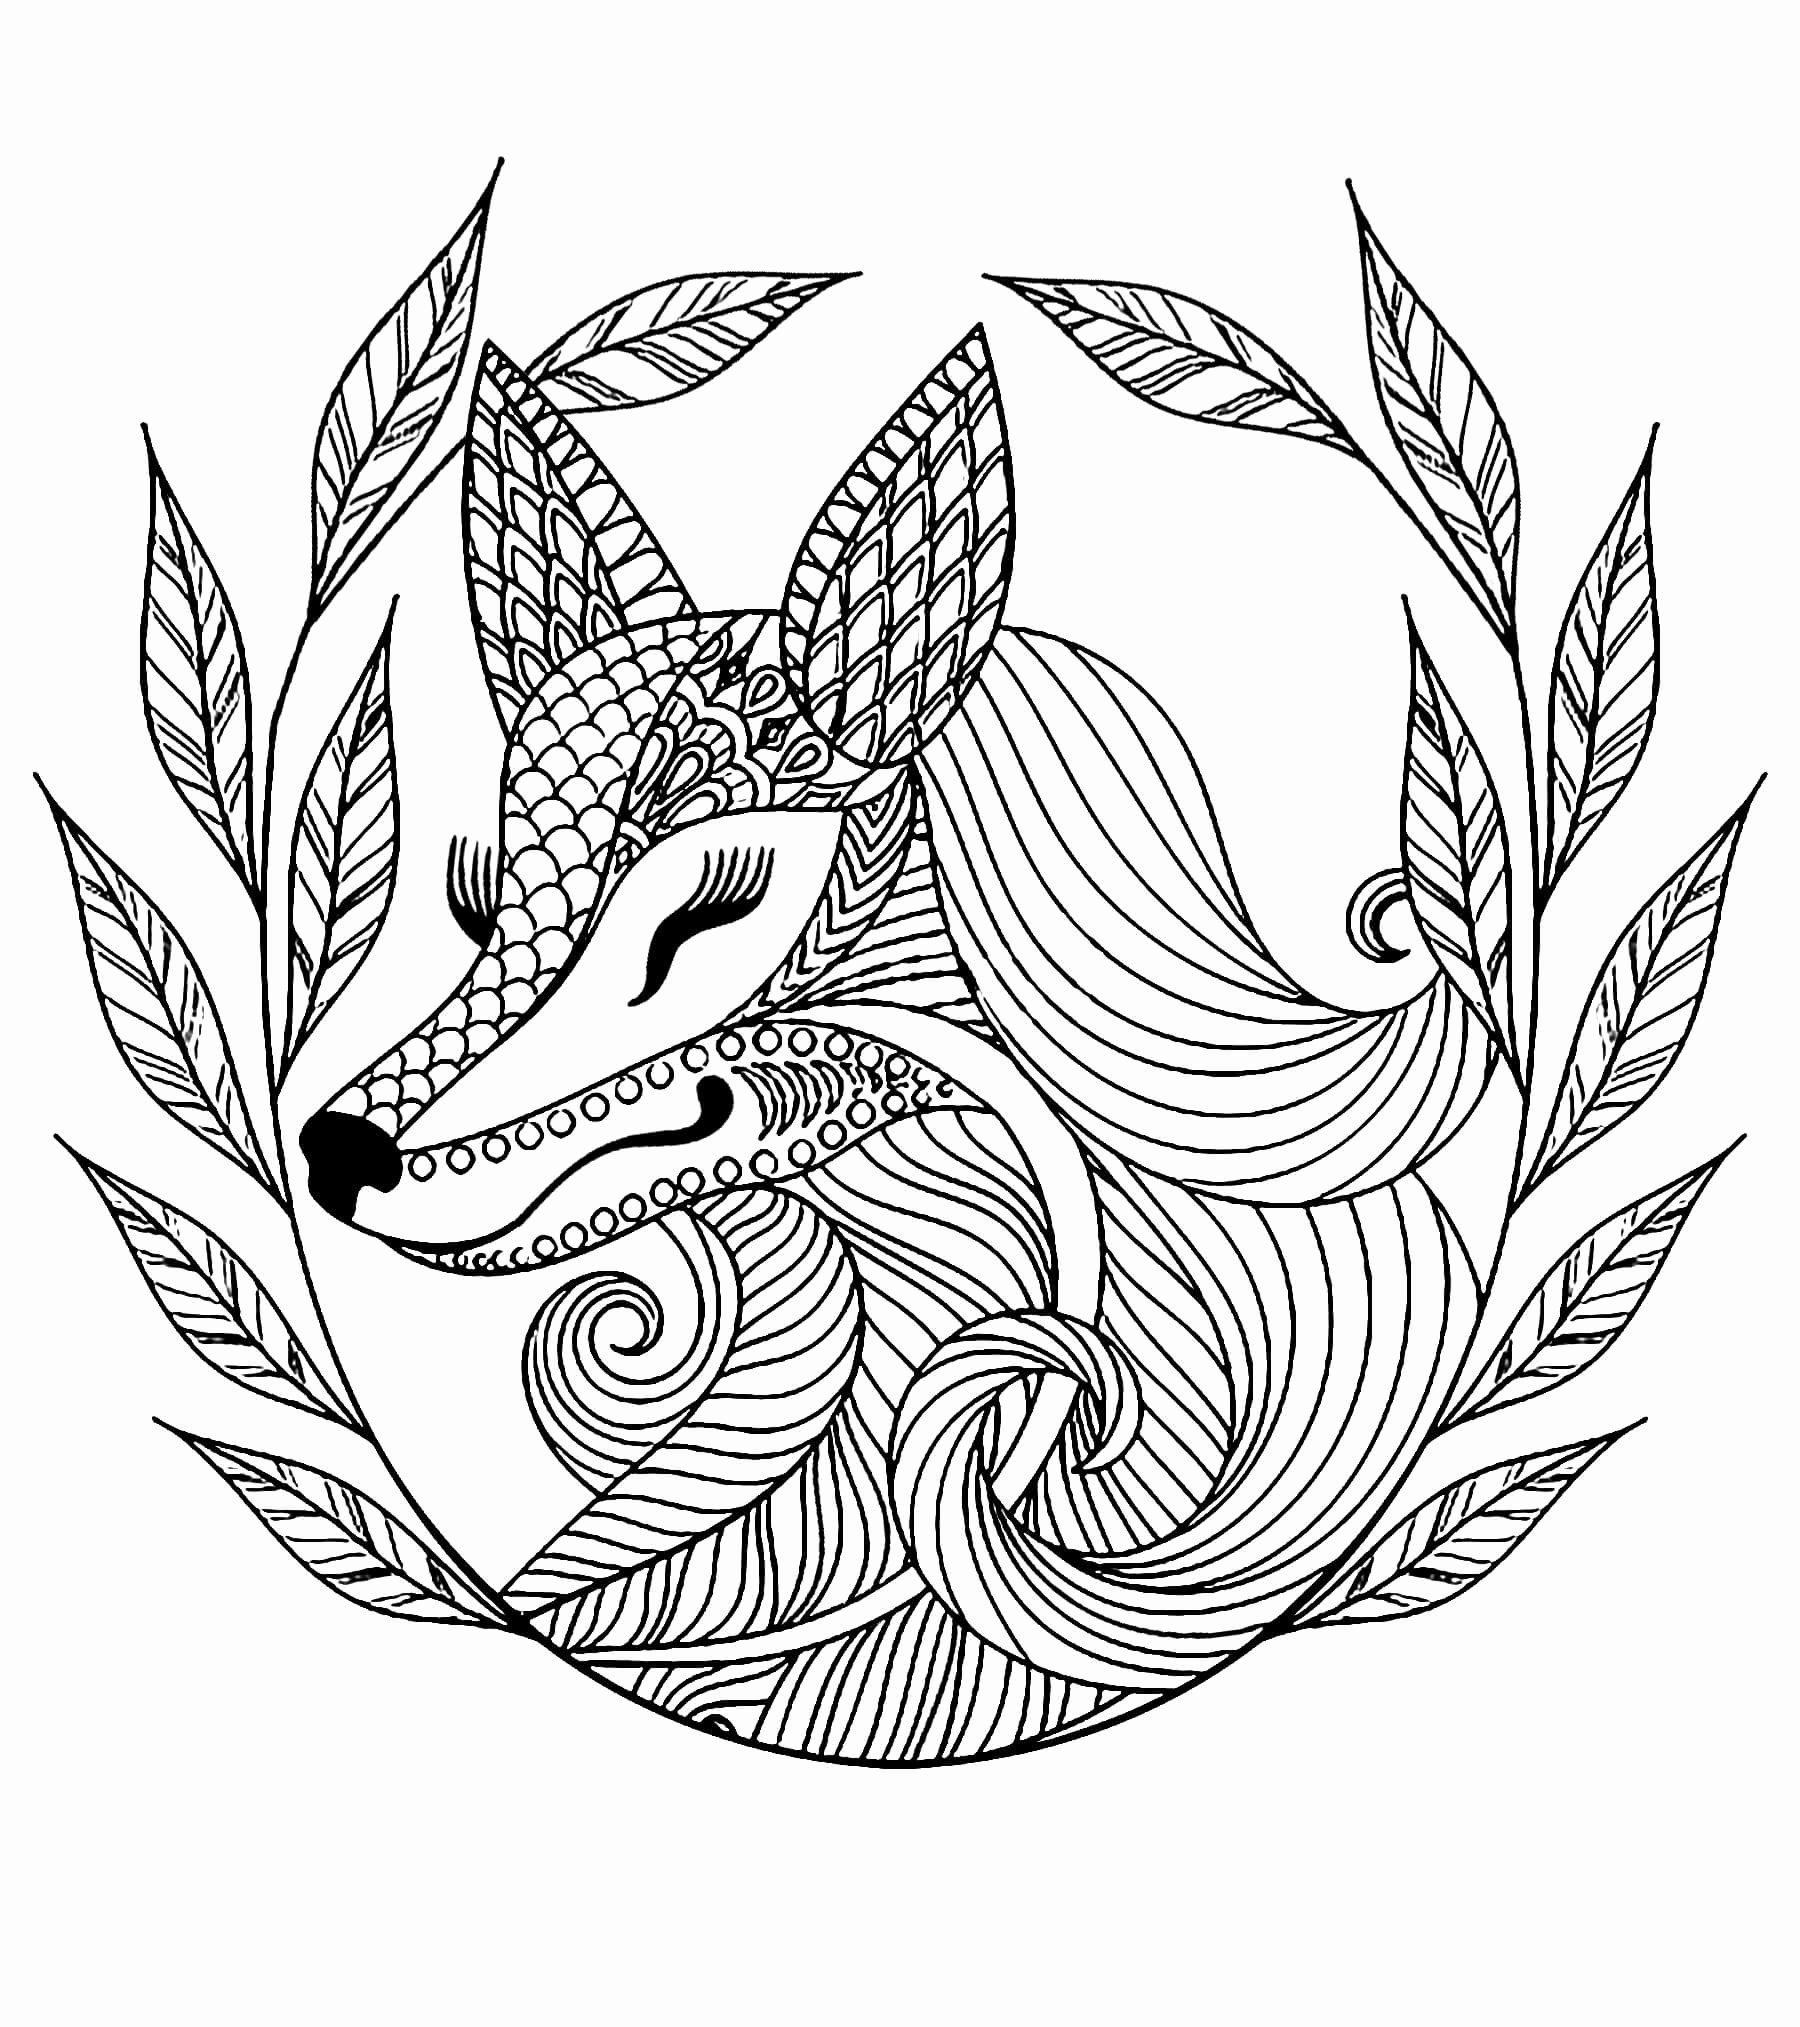 Difficult Coloring Pages Of Animals Viati Coloring Fox Coloring Page Animal Coloring Pages Pokemon Coloring Pages [ 2027 x 1800 Pixel ]